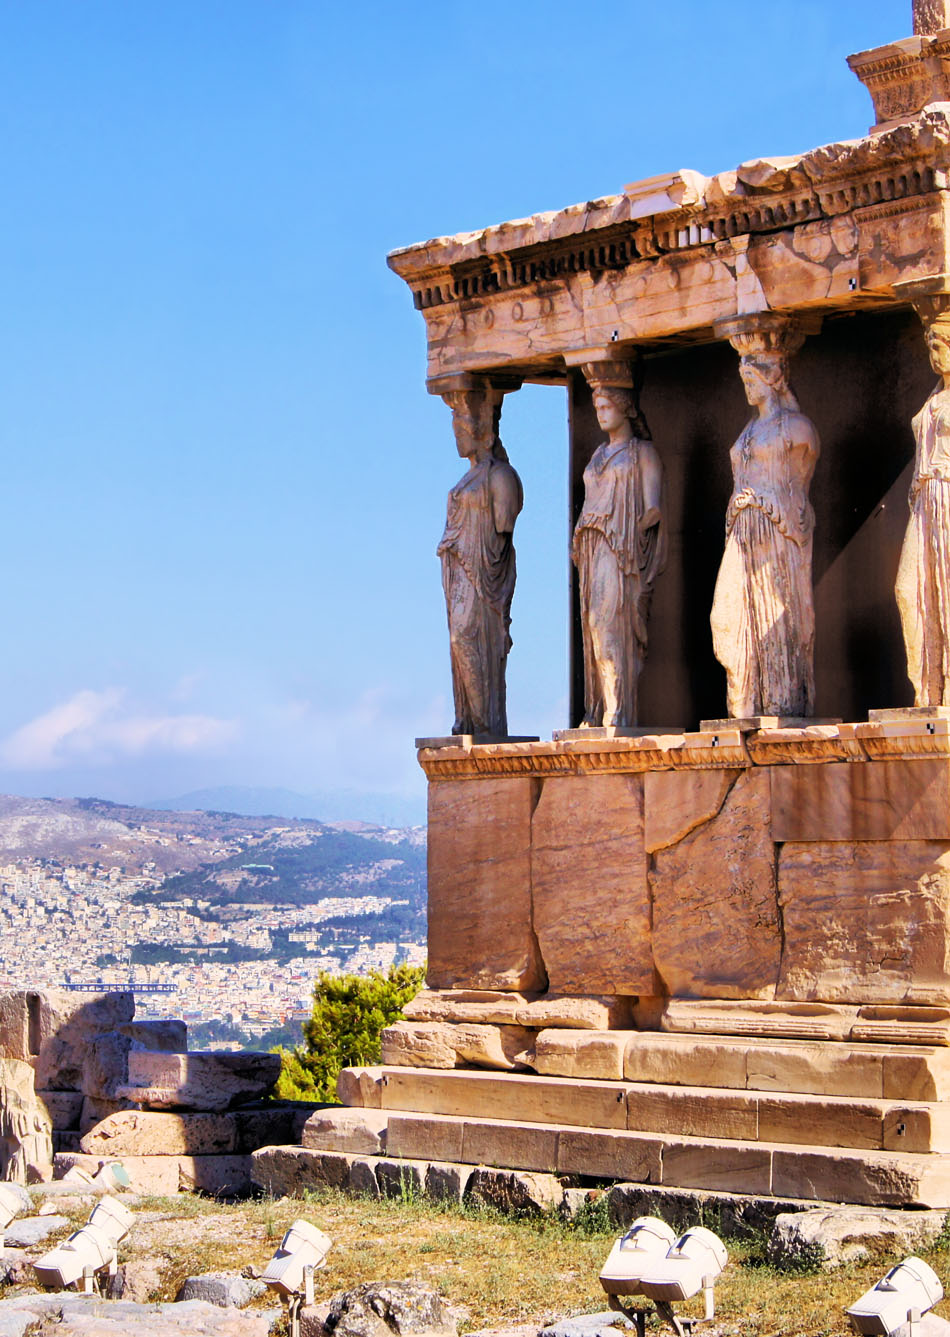 Famous-ancient-Porch-of-the-Caryatids-overlooking-Athens-Greece-Amazing-Photography-Of-Cities-and-wallpaper-wp425349